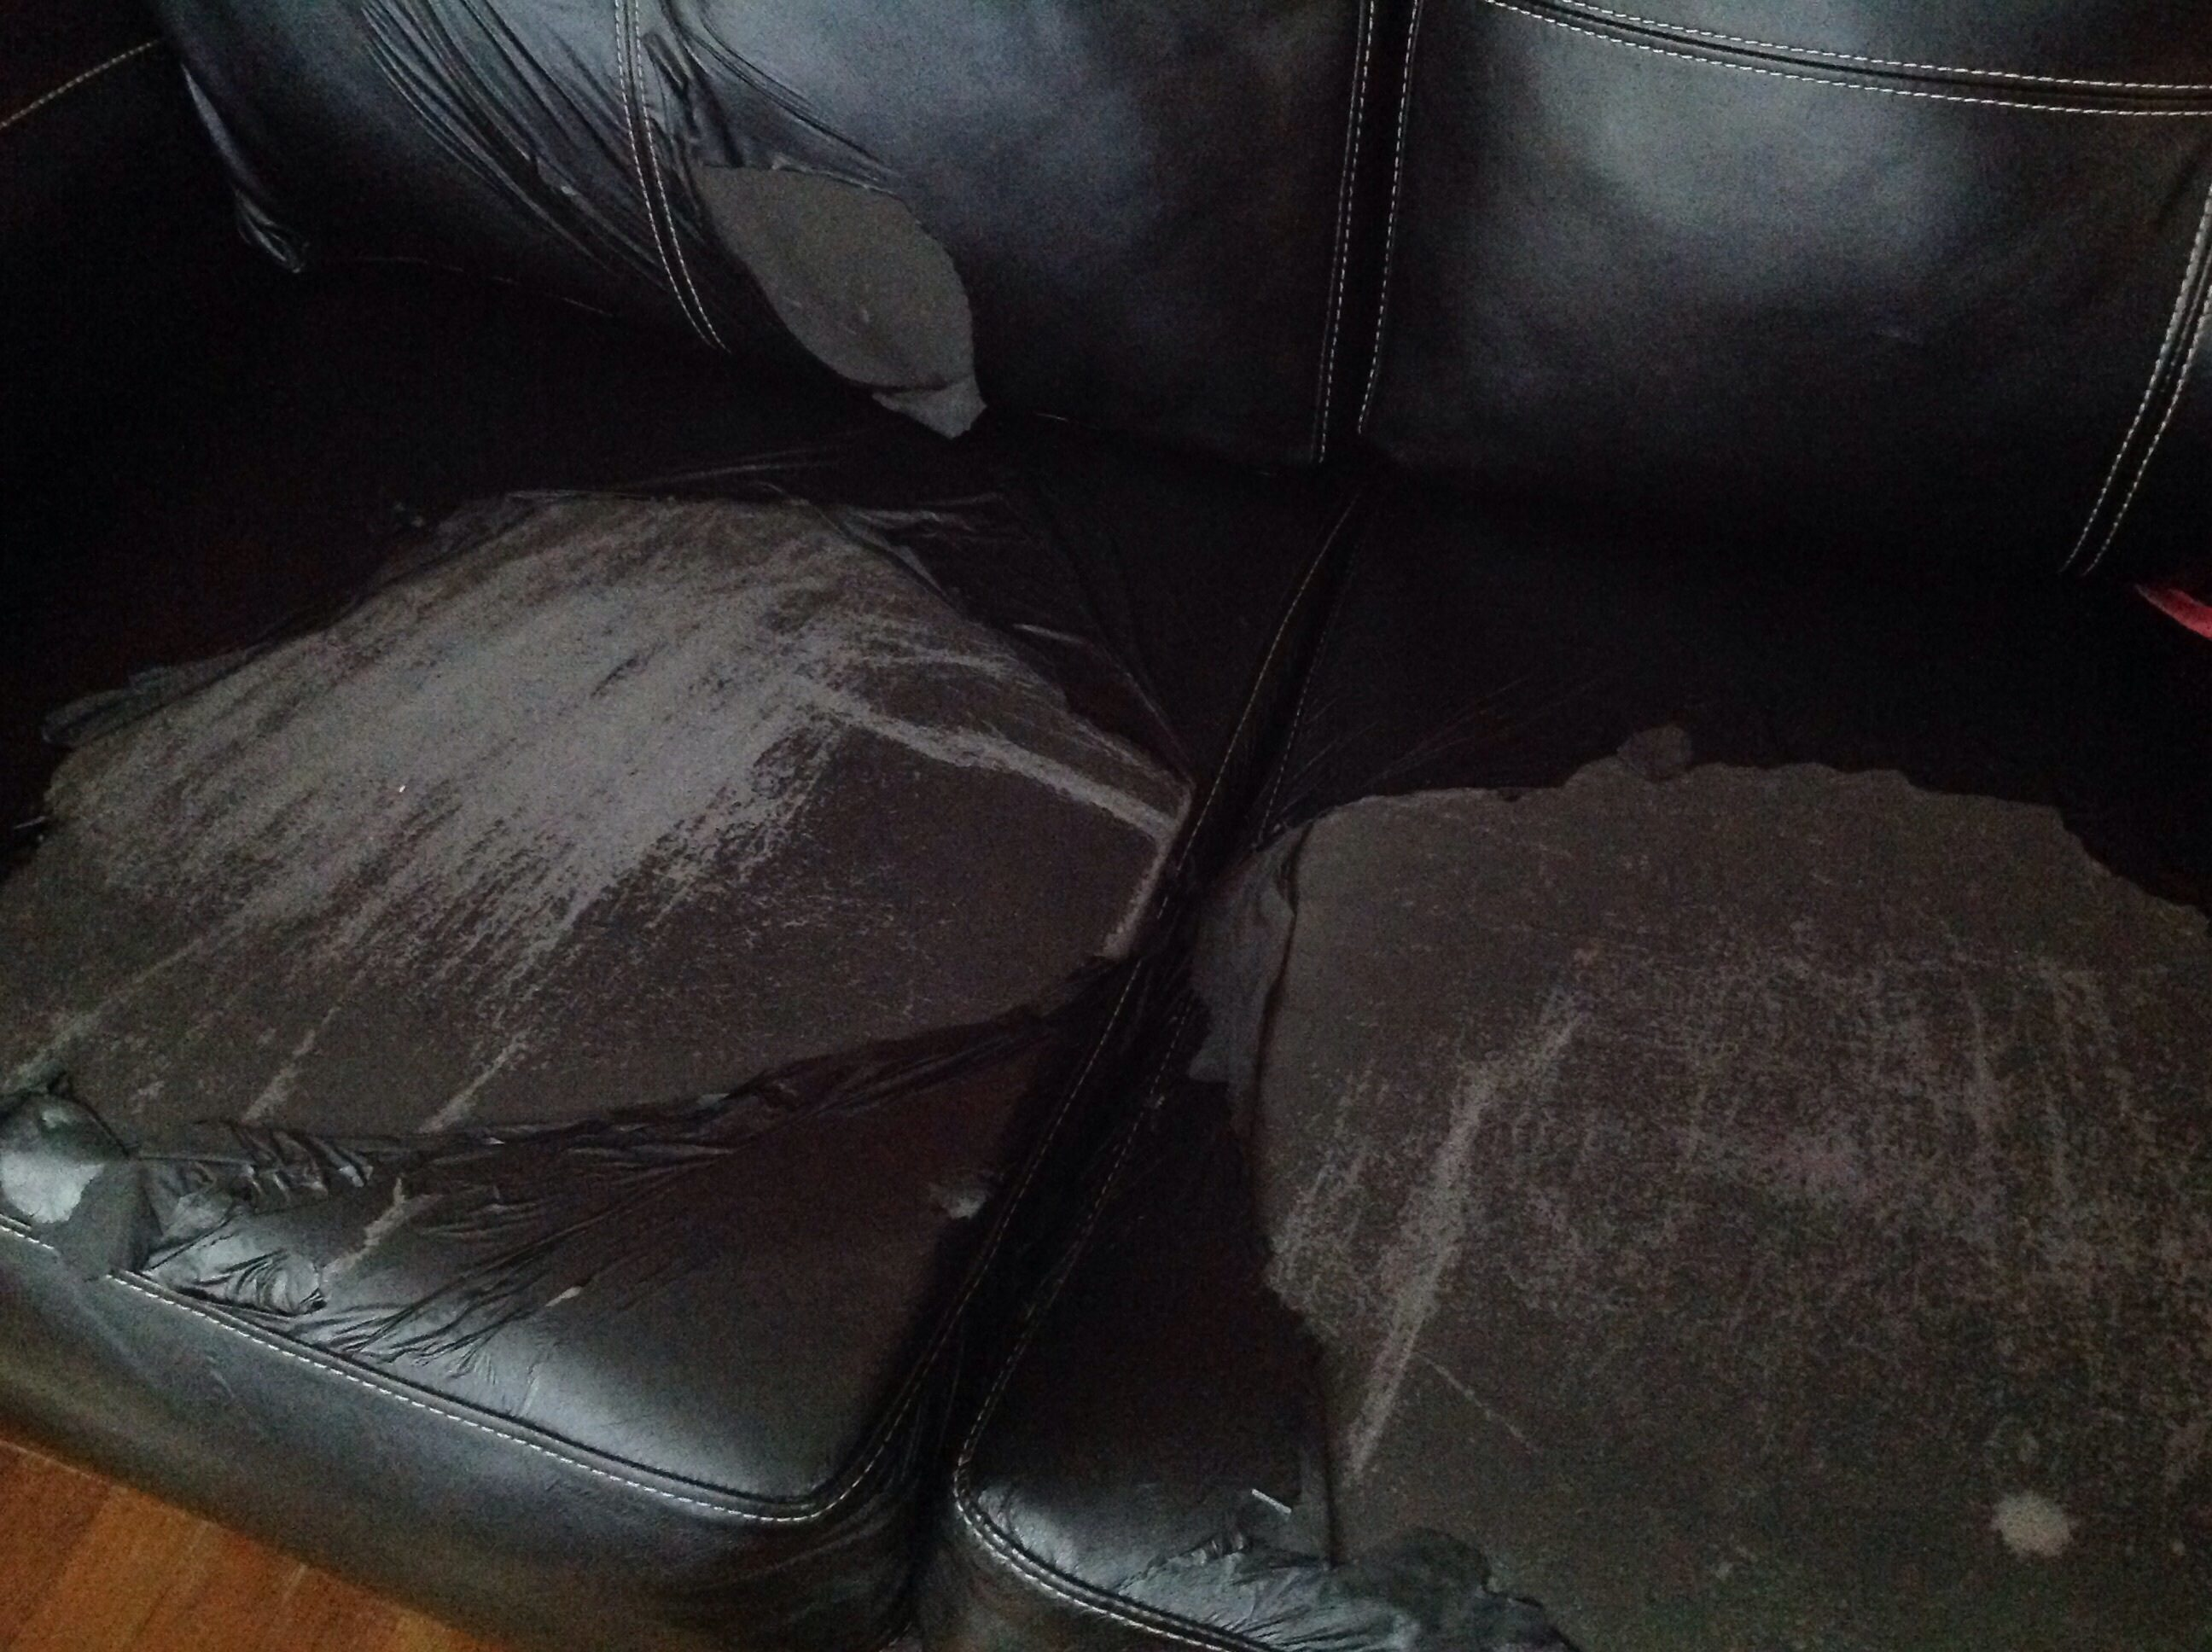 my leather chair is peeling covers outdoor top 793 complaints and reviews about bob's discount furniture | page 2